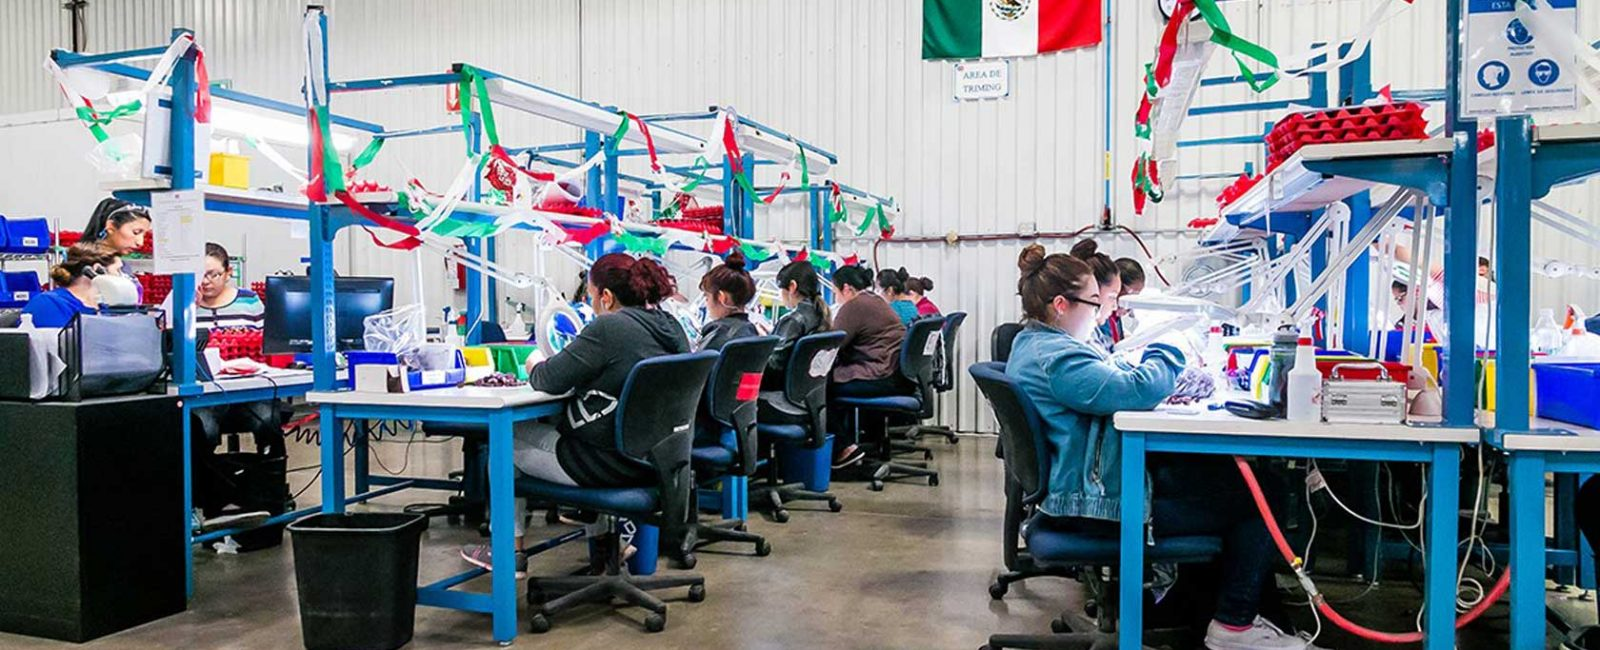 Why choose a company manufacturing in Mexico?